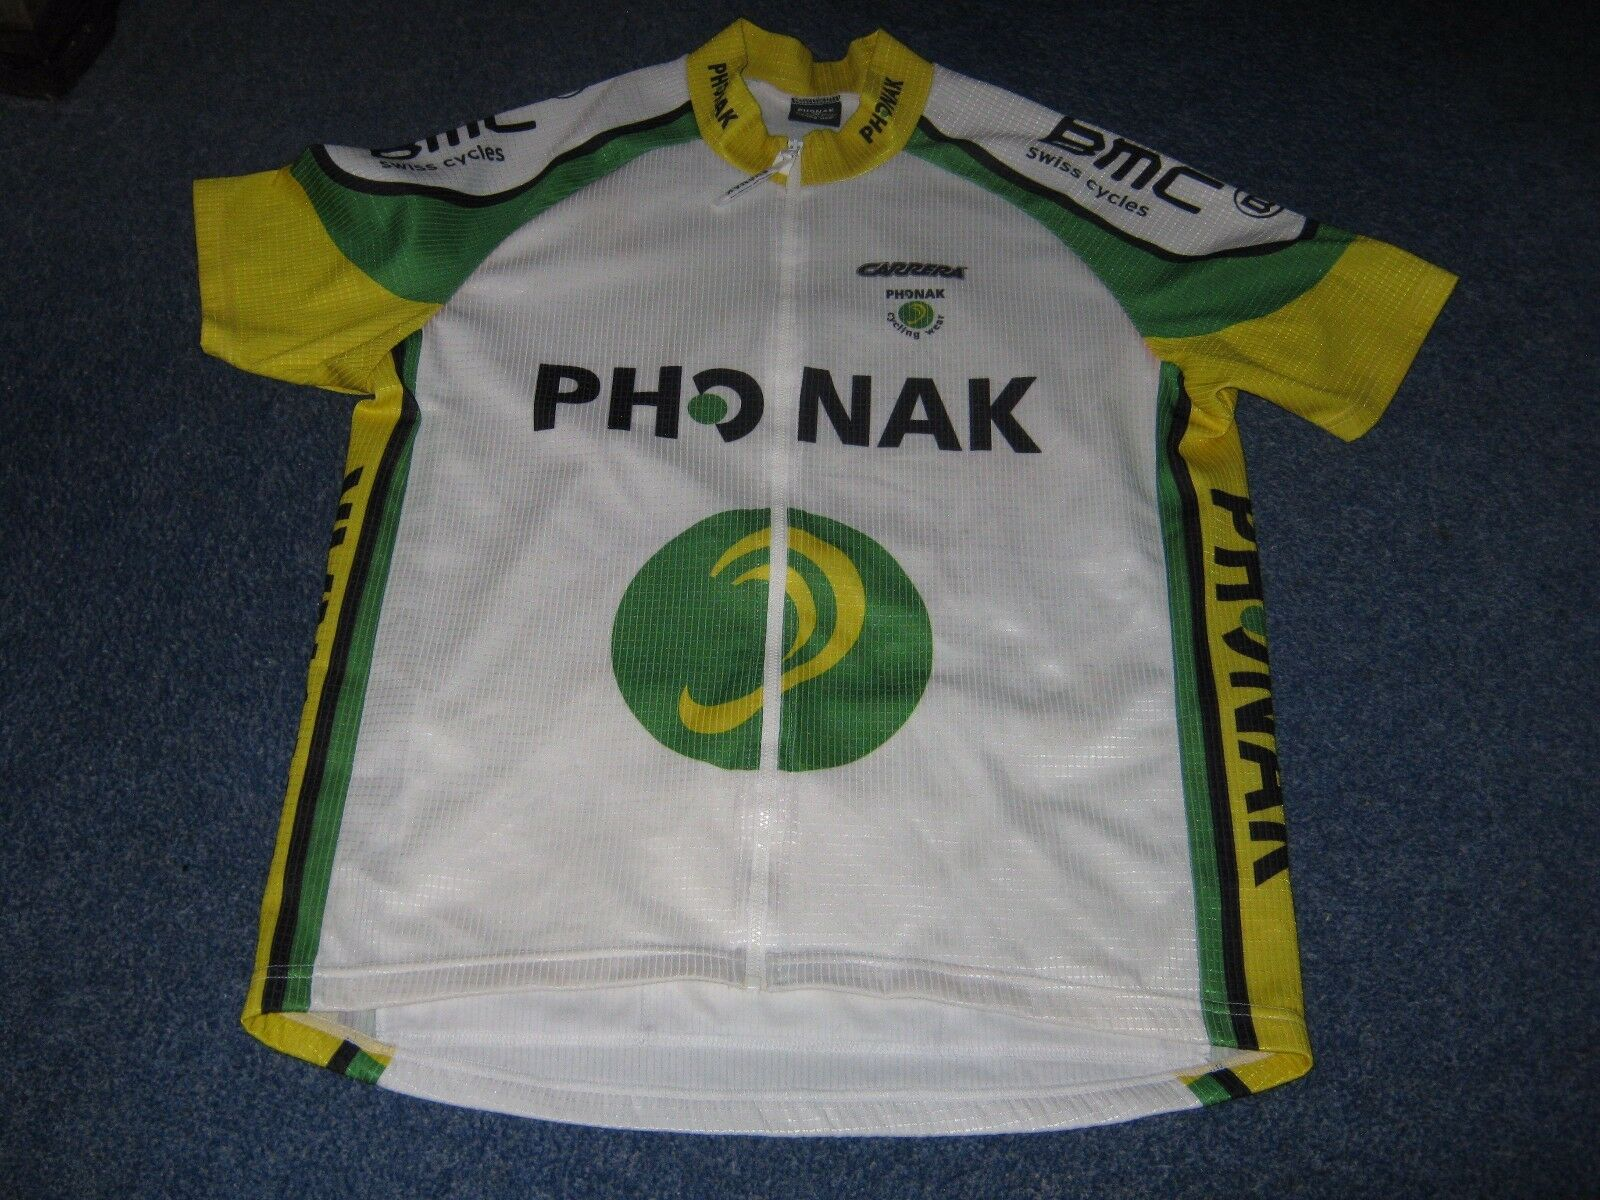 PHONAK CARRERA BMC CYCLING JERSEY [L] NOS